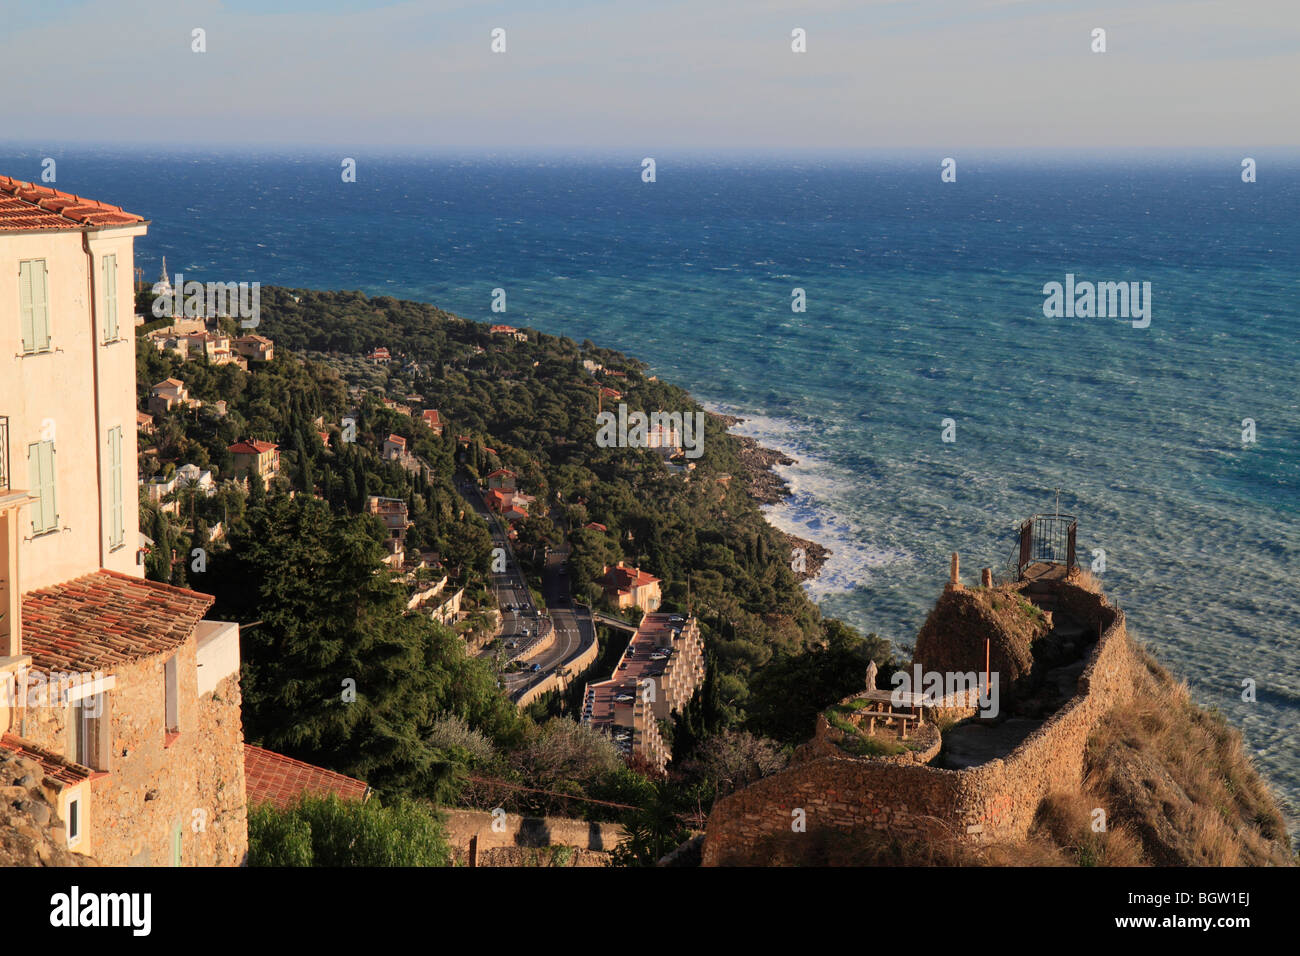 View from the Place des Deux Frères, on the Cap Martin in a storm, village of Roquebrune, Roquebrune Cap Martin, - Stock Image